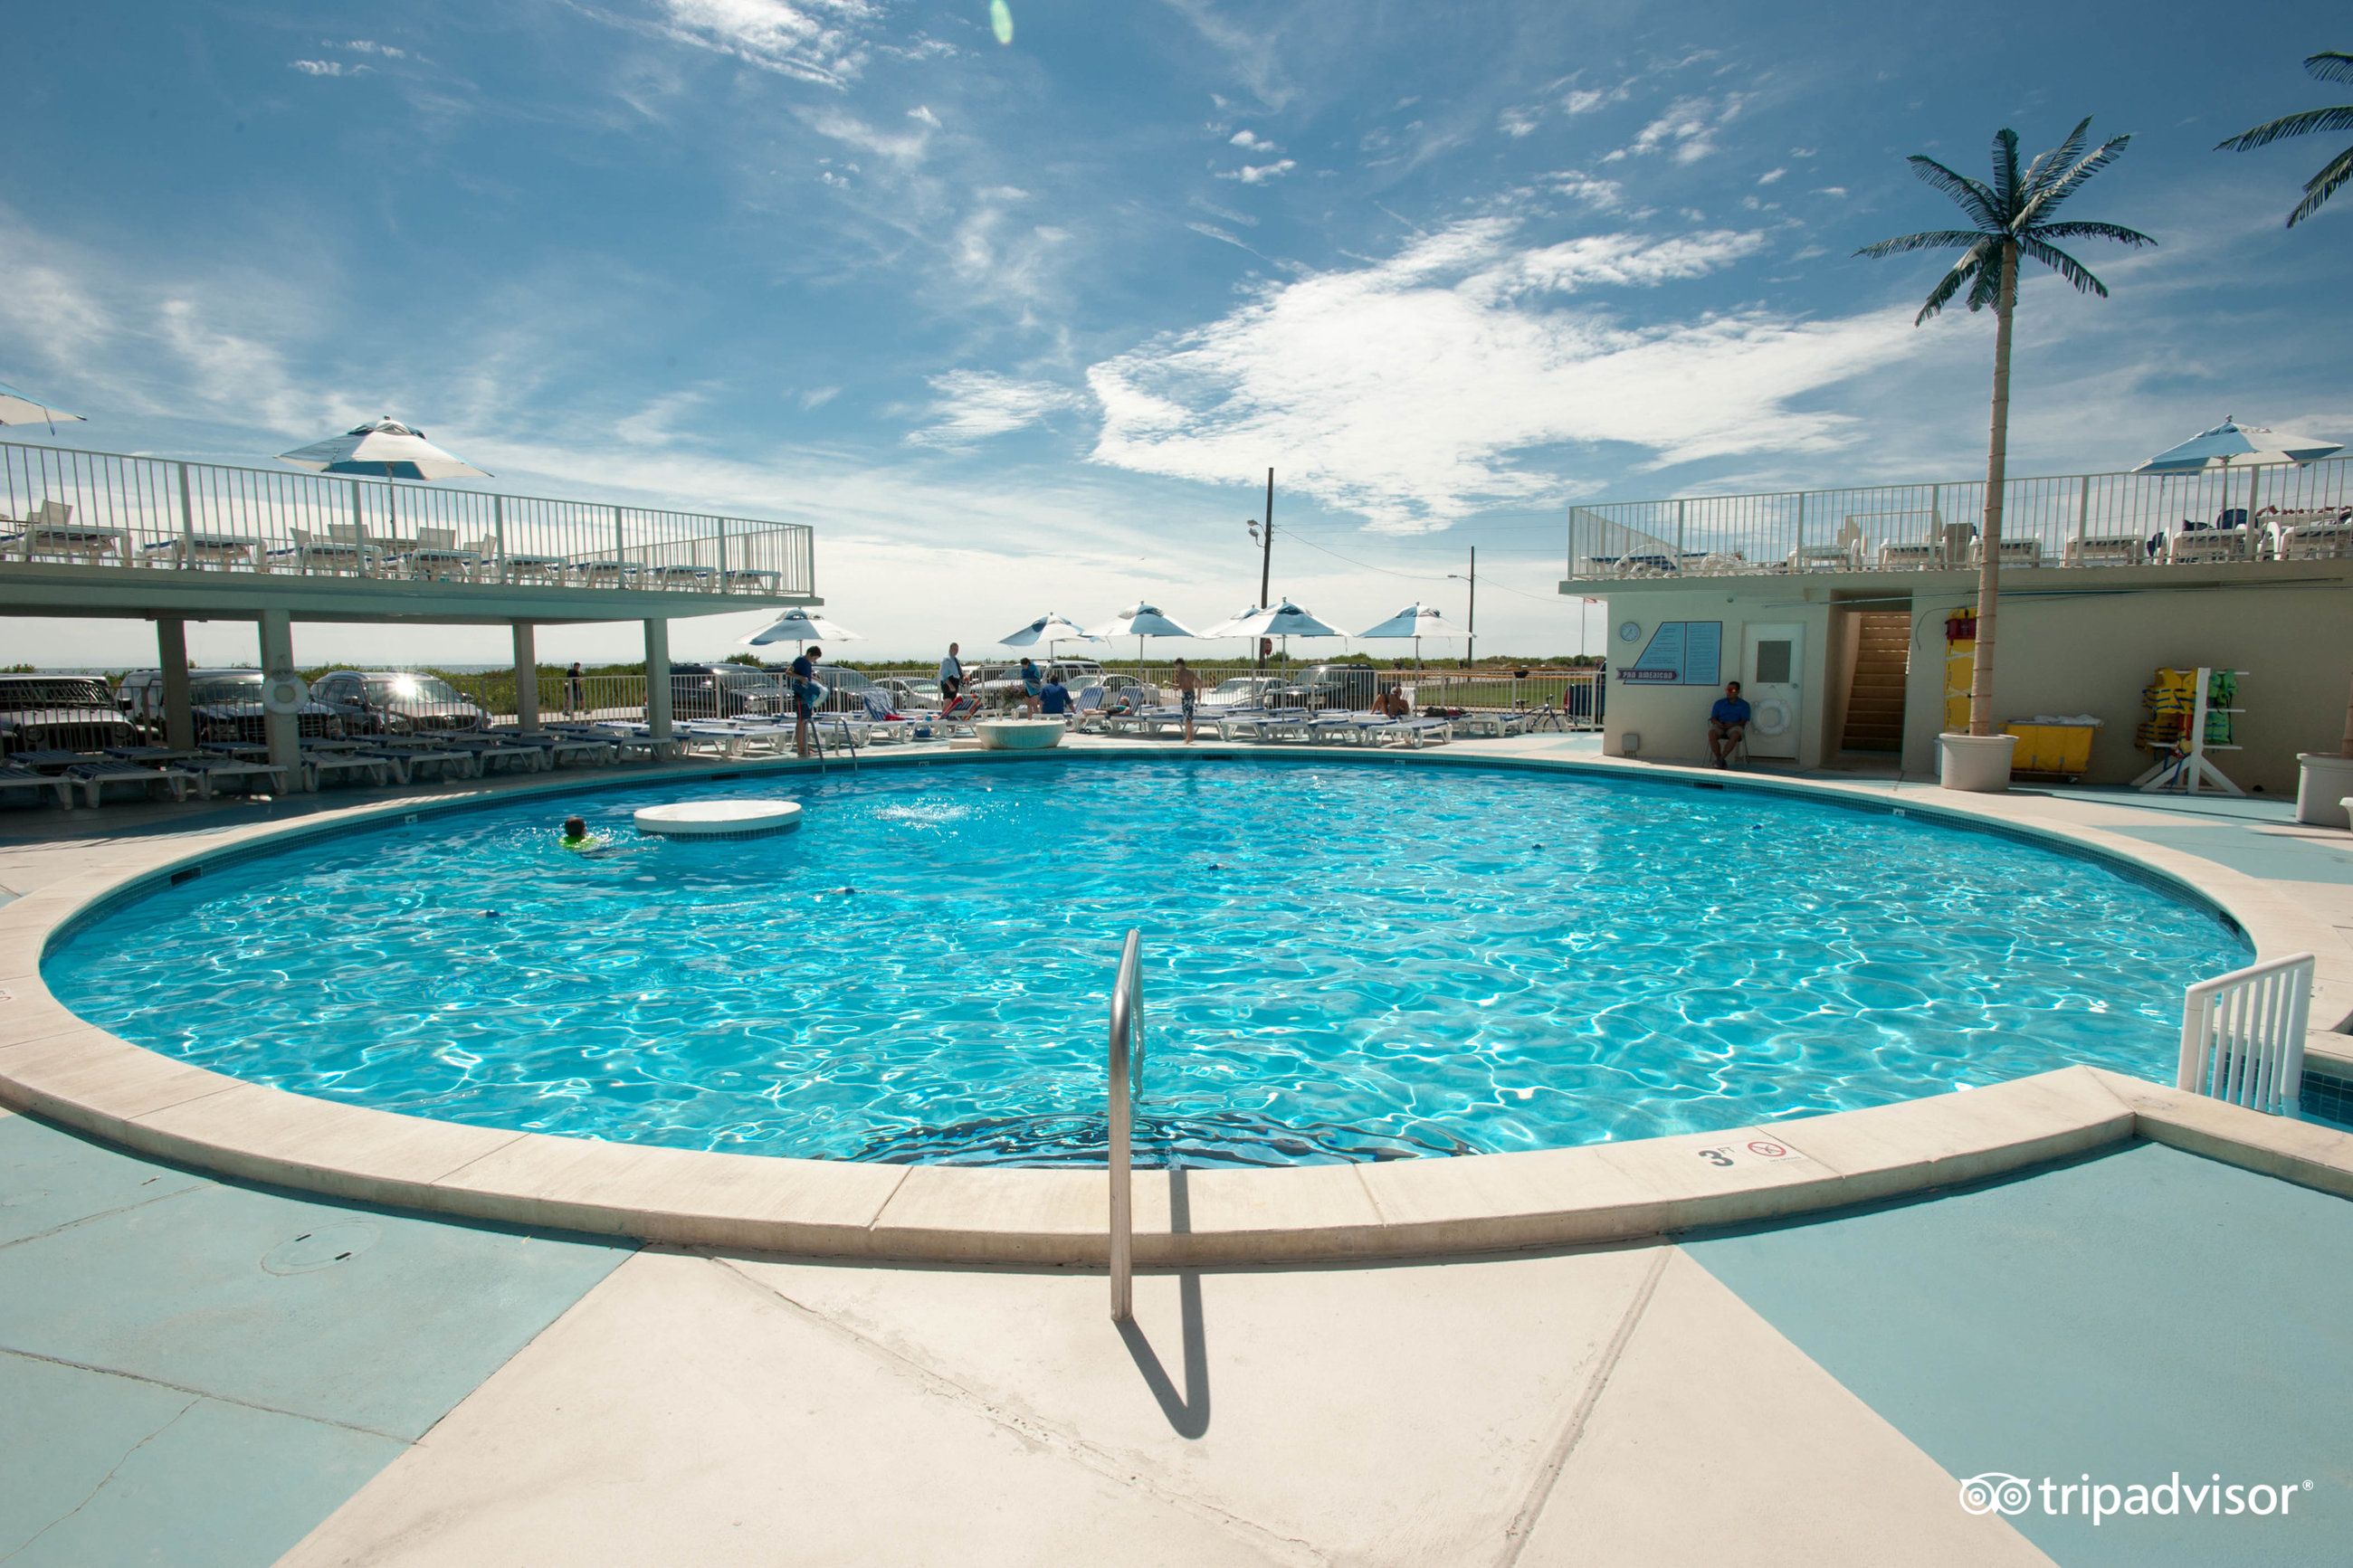 Pan american hotel wildwood crest nj - We Search 200 Sites To Find The Best Hotel Prices